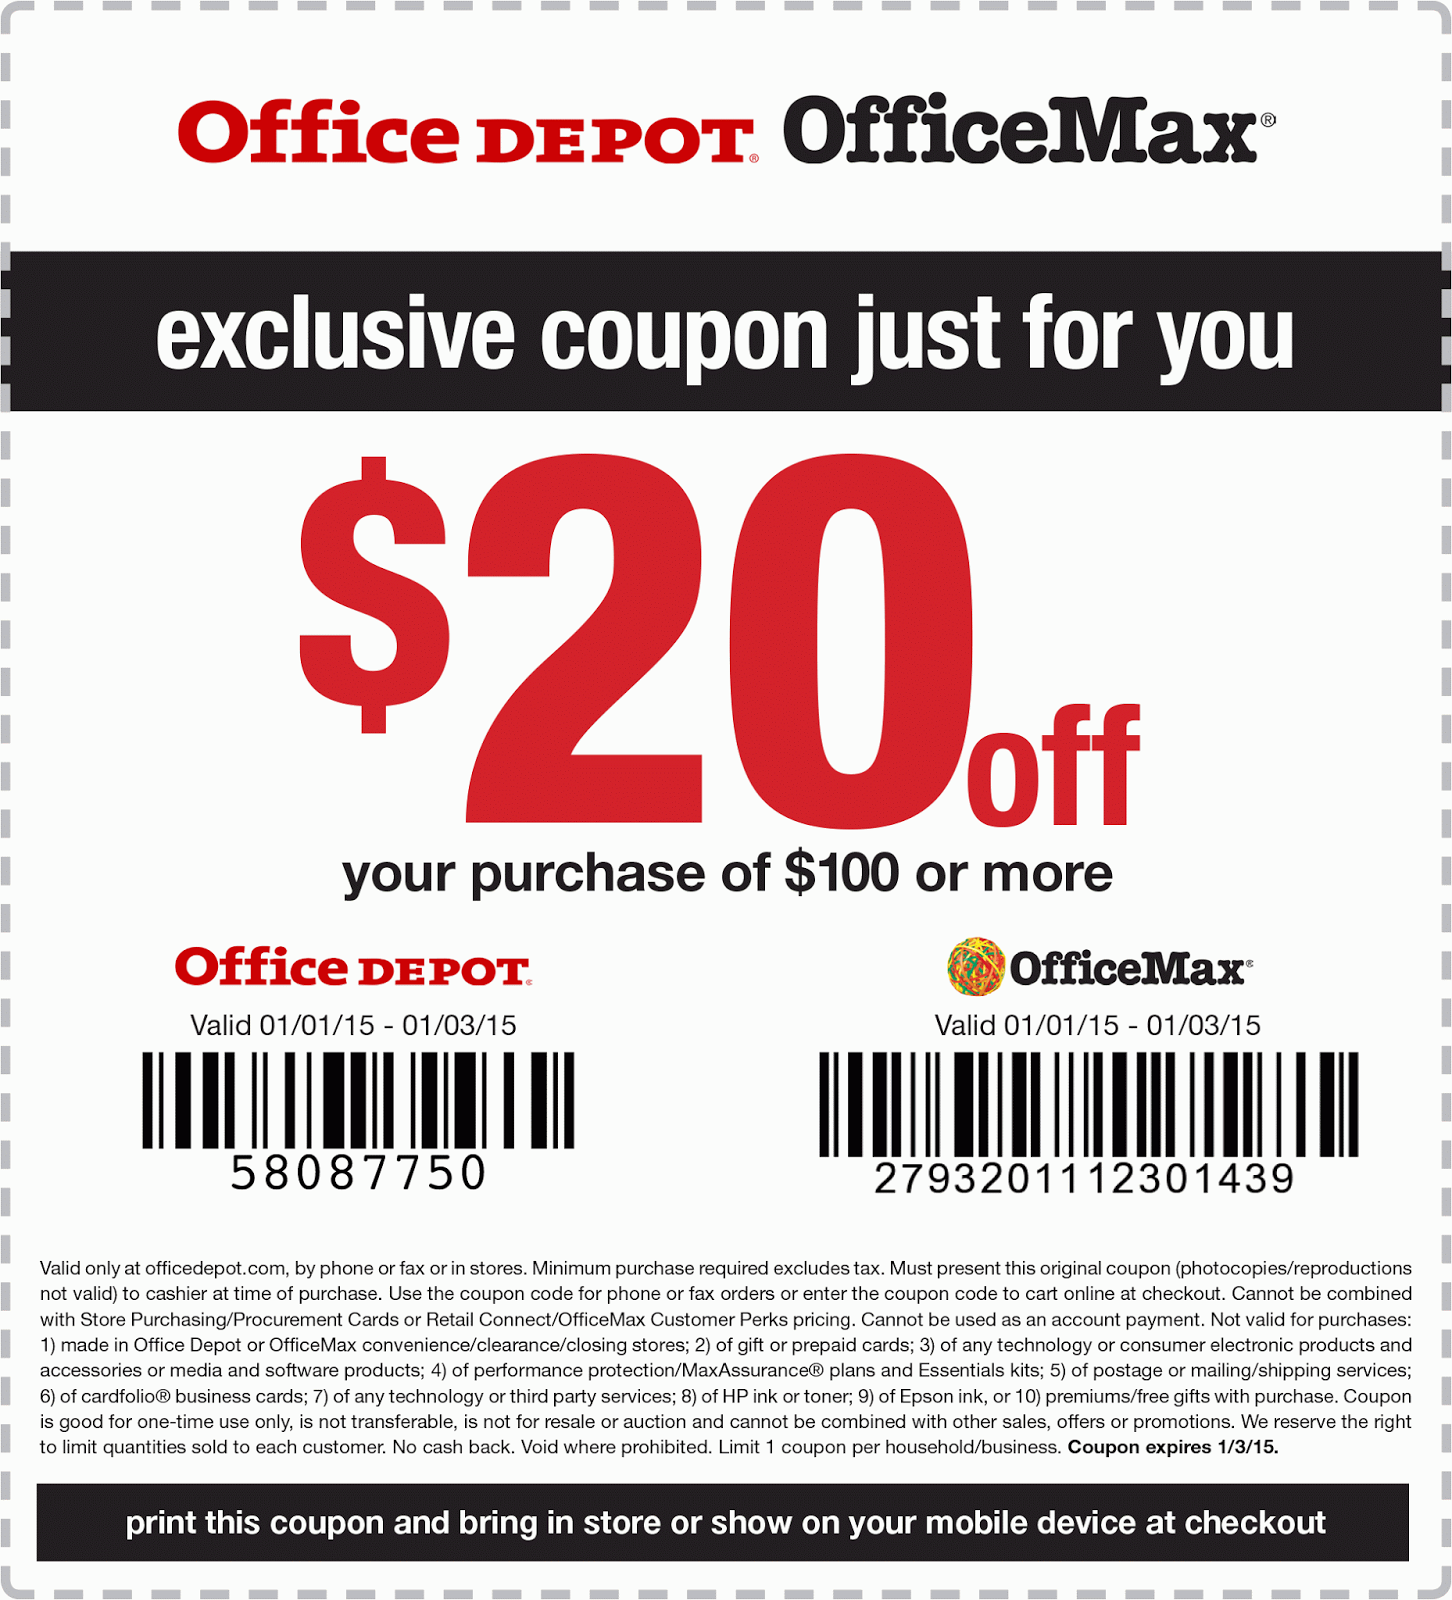 Officedepot coupon code